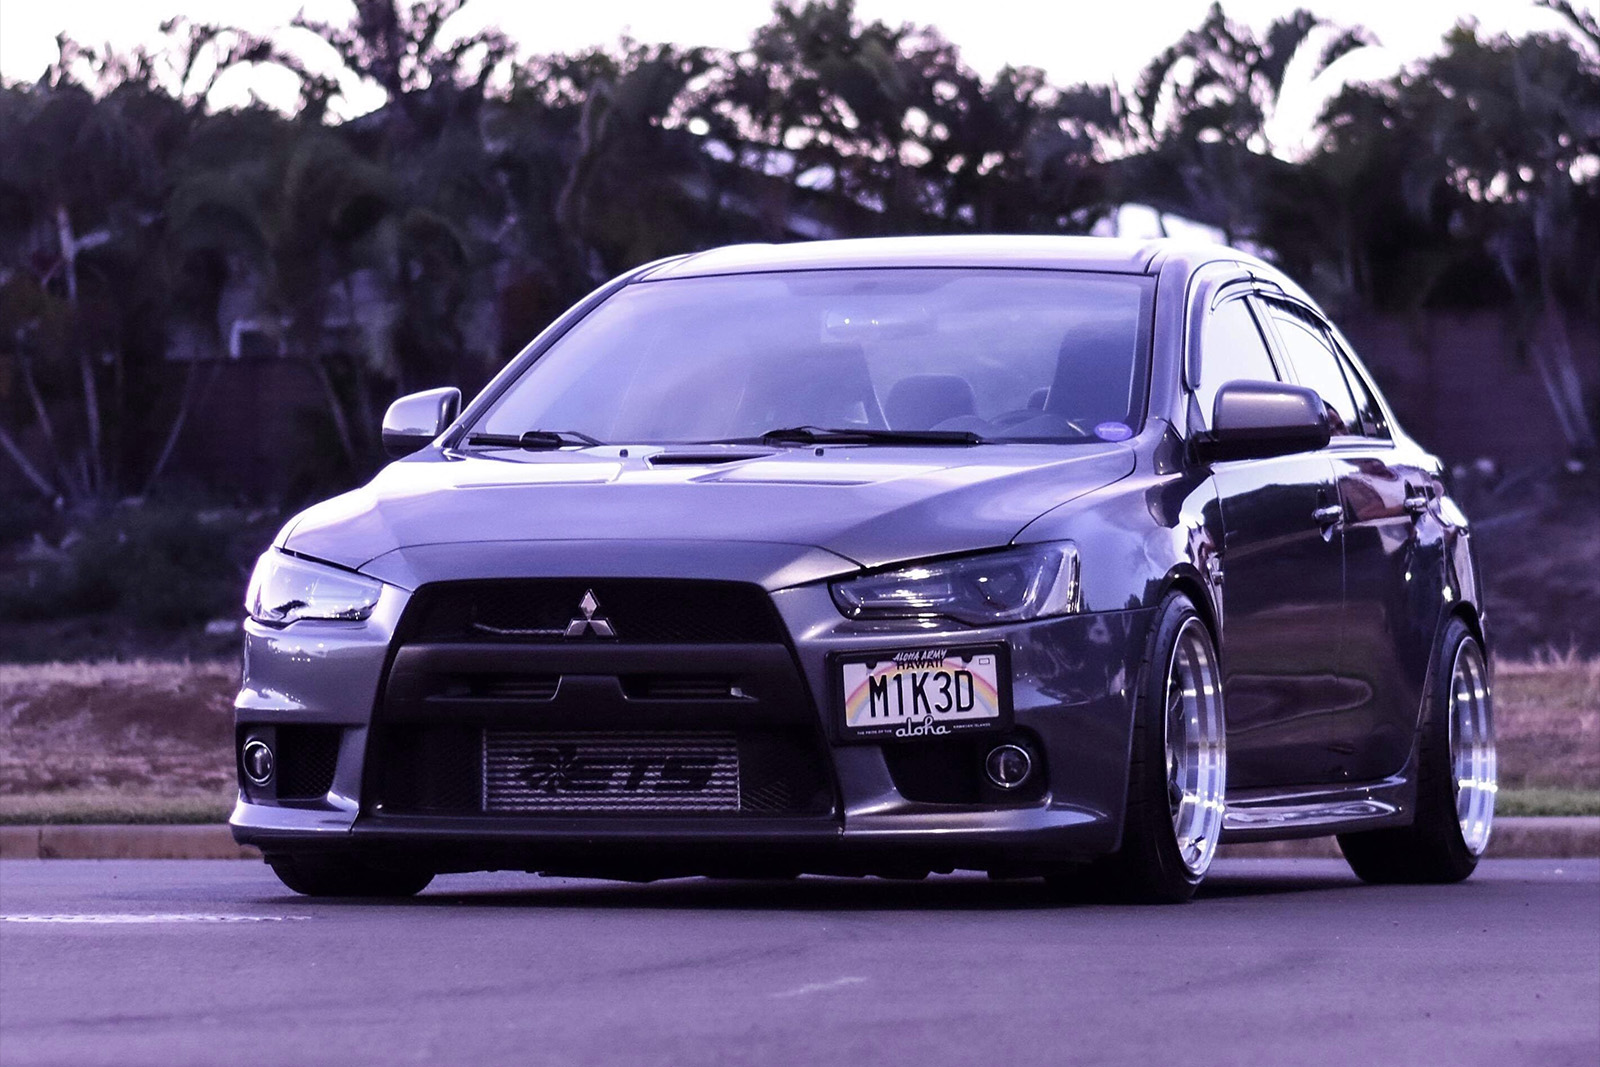 05 Michael Dalope 2010 Mitsubishi Evolution X GSR PASMAG Tuner Battlegrounds